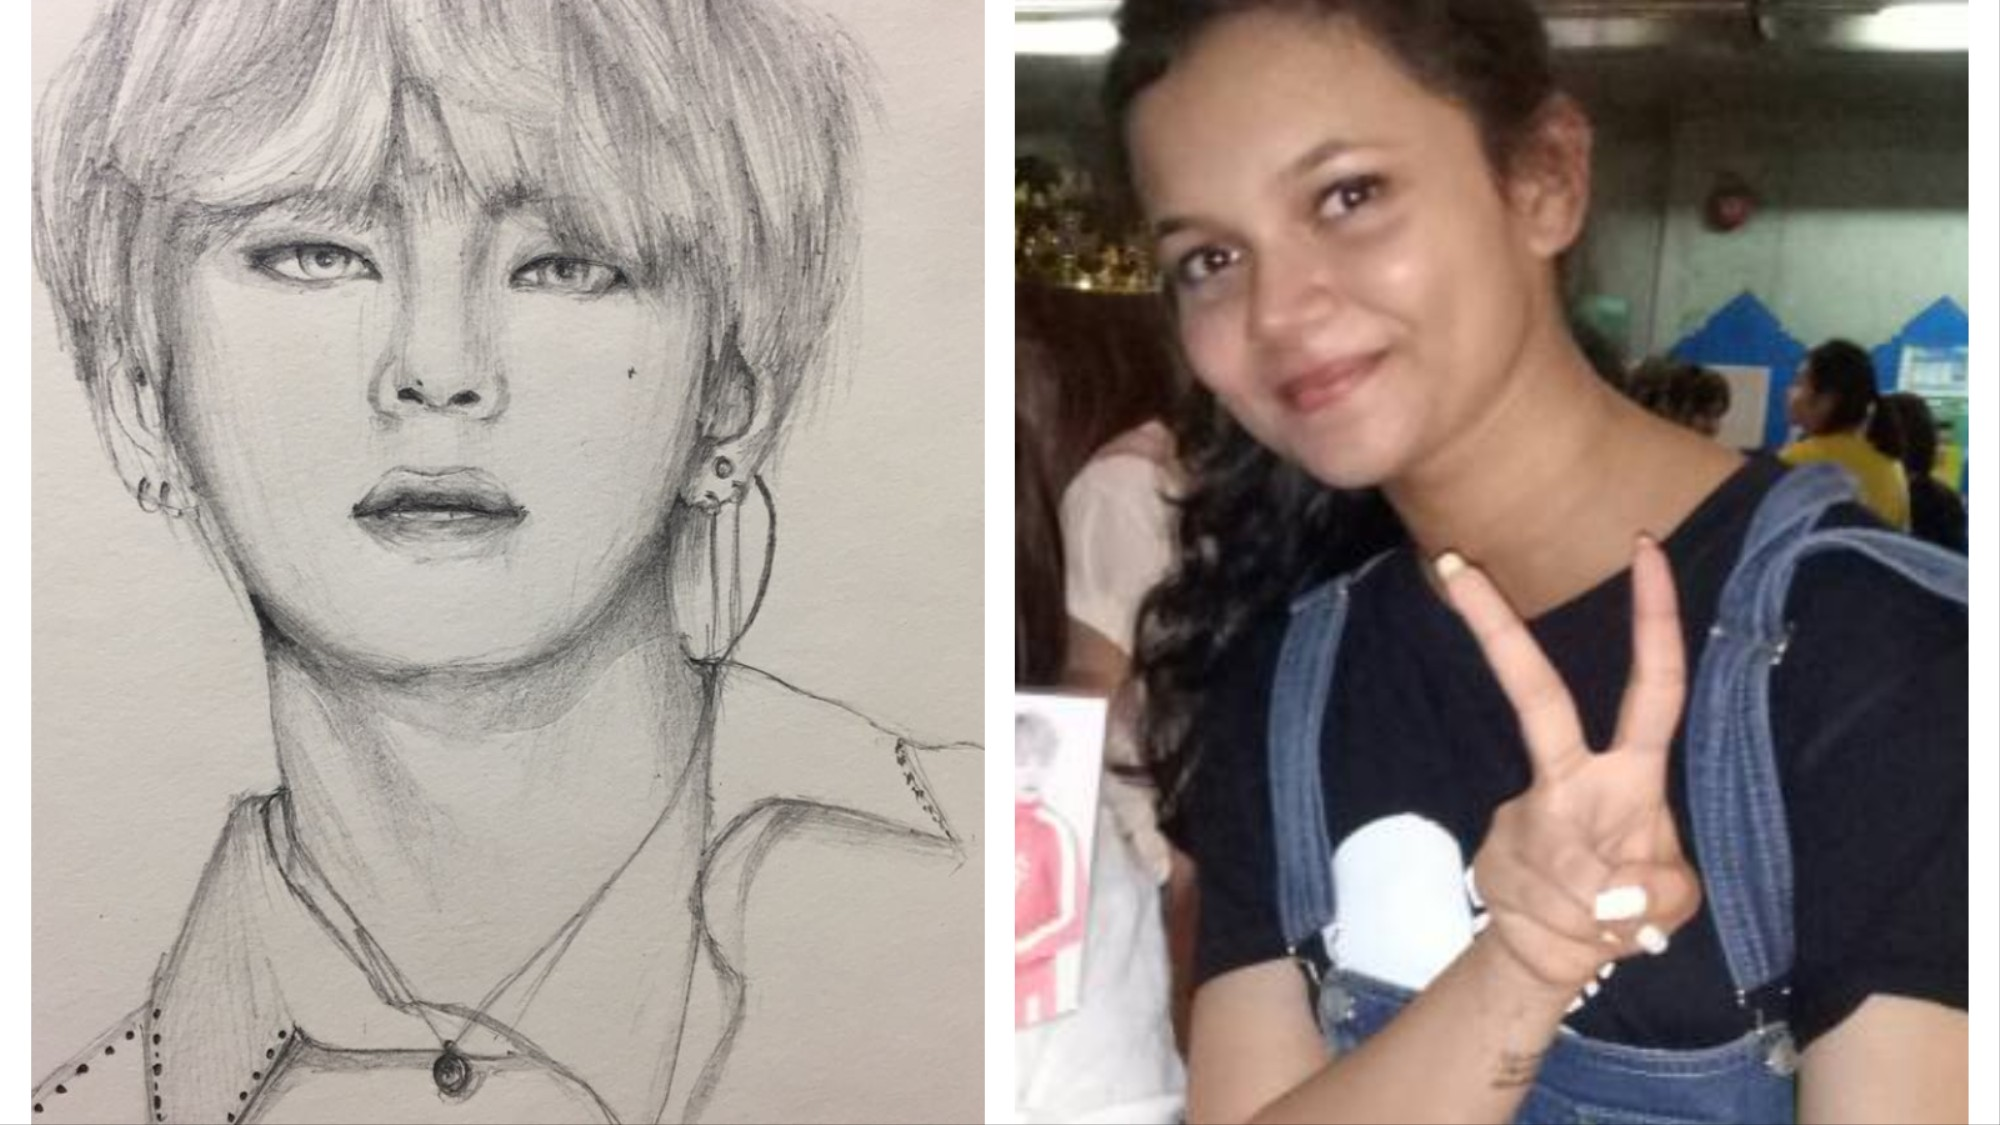 10 Questions You Always Wanted to Ask a K-Pop Fan - VICE